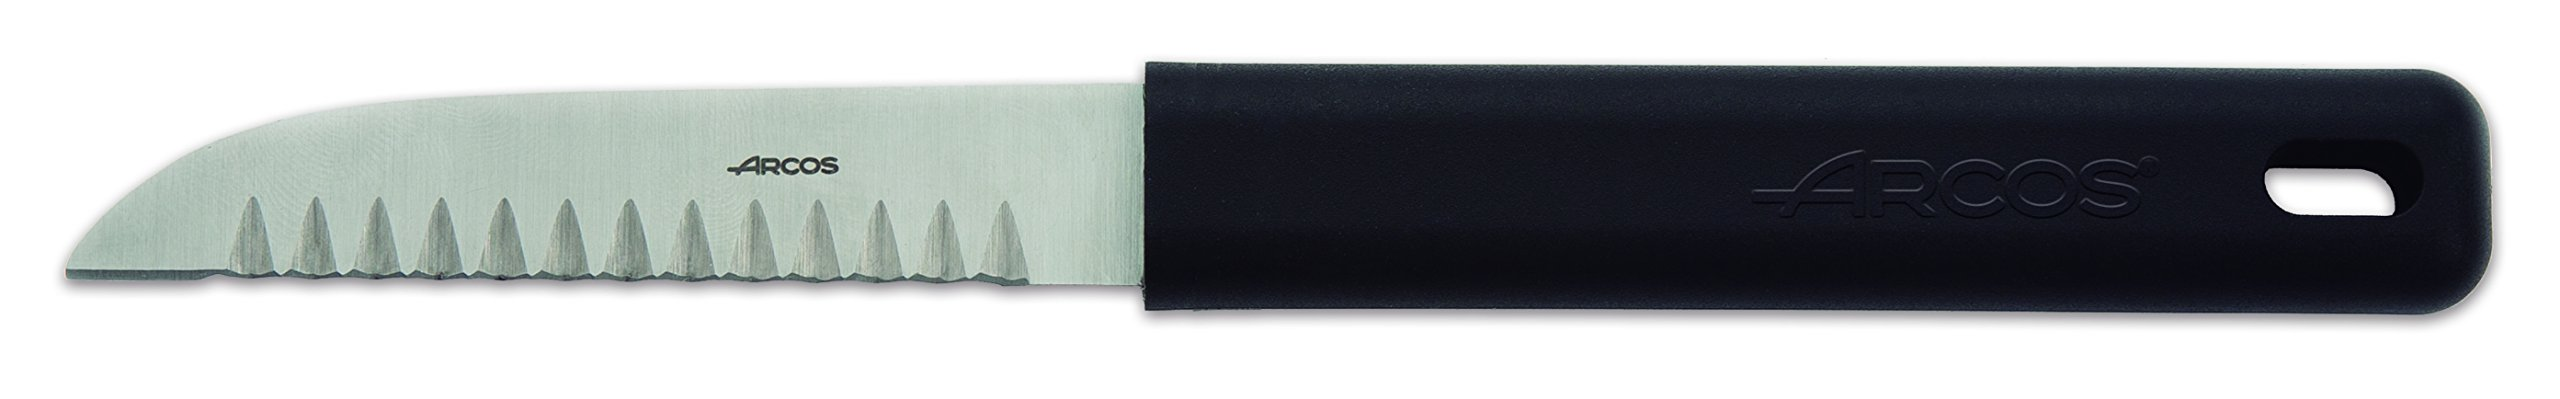 Arcos 3-Inch 90 mm Decorating Knife